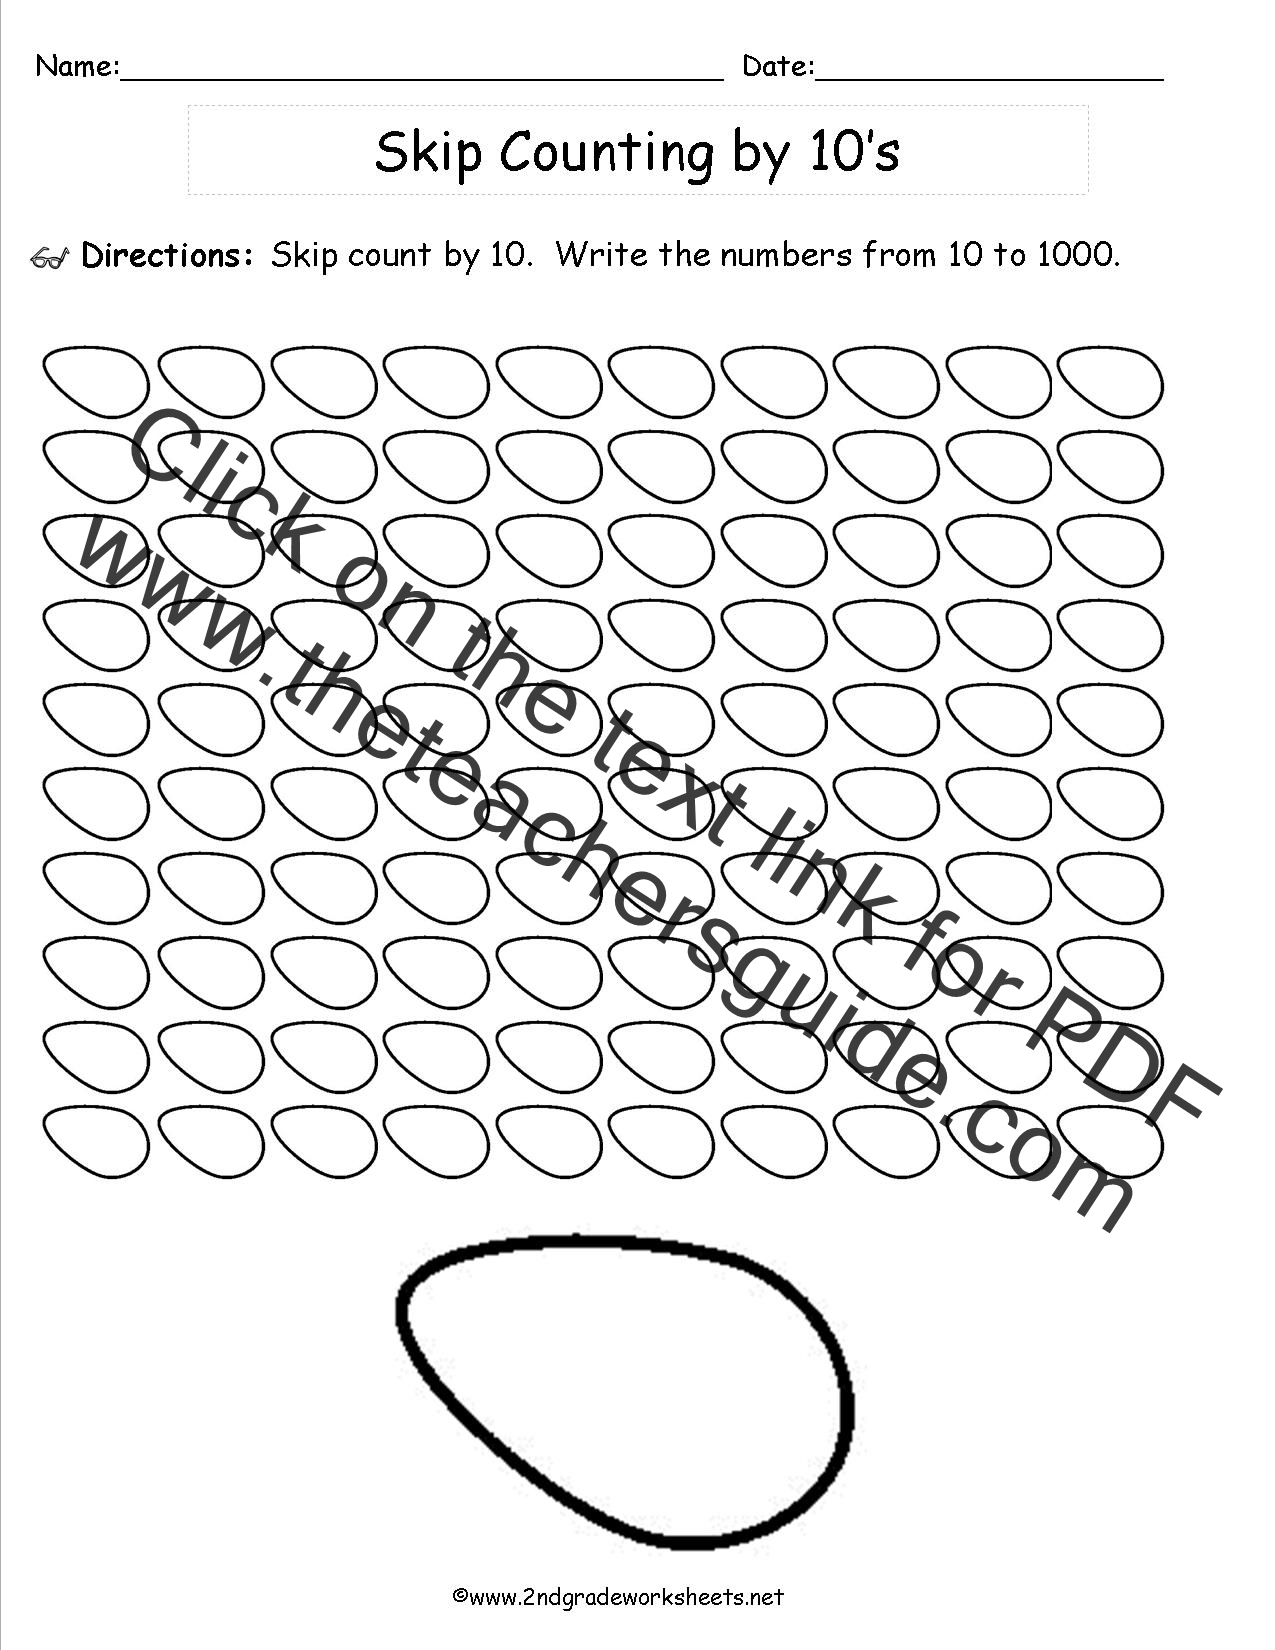 Skip Counting Worksheets To